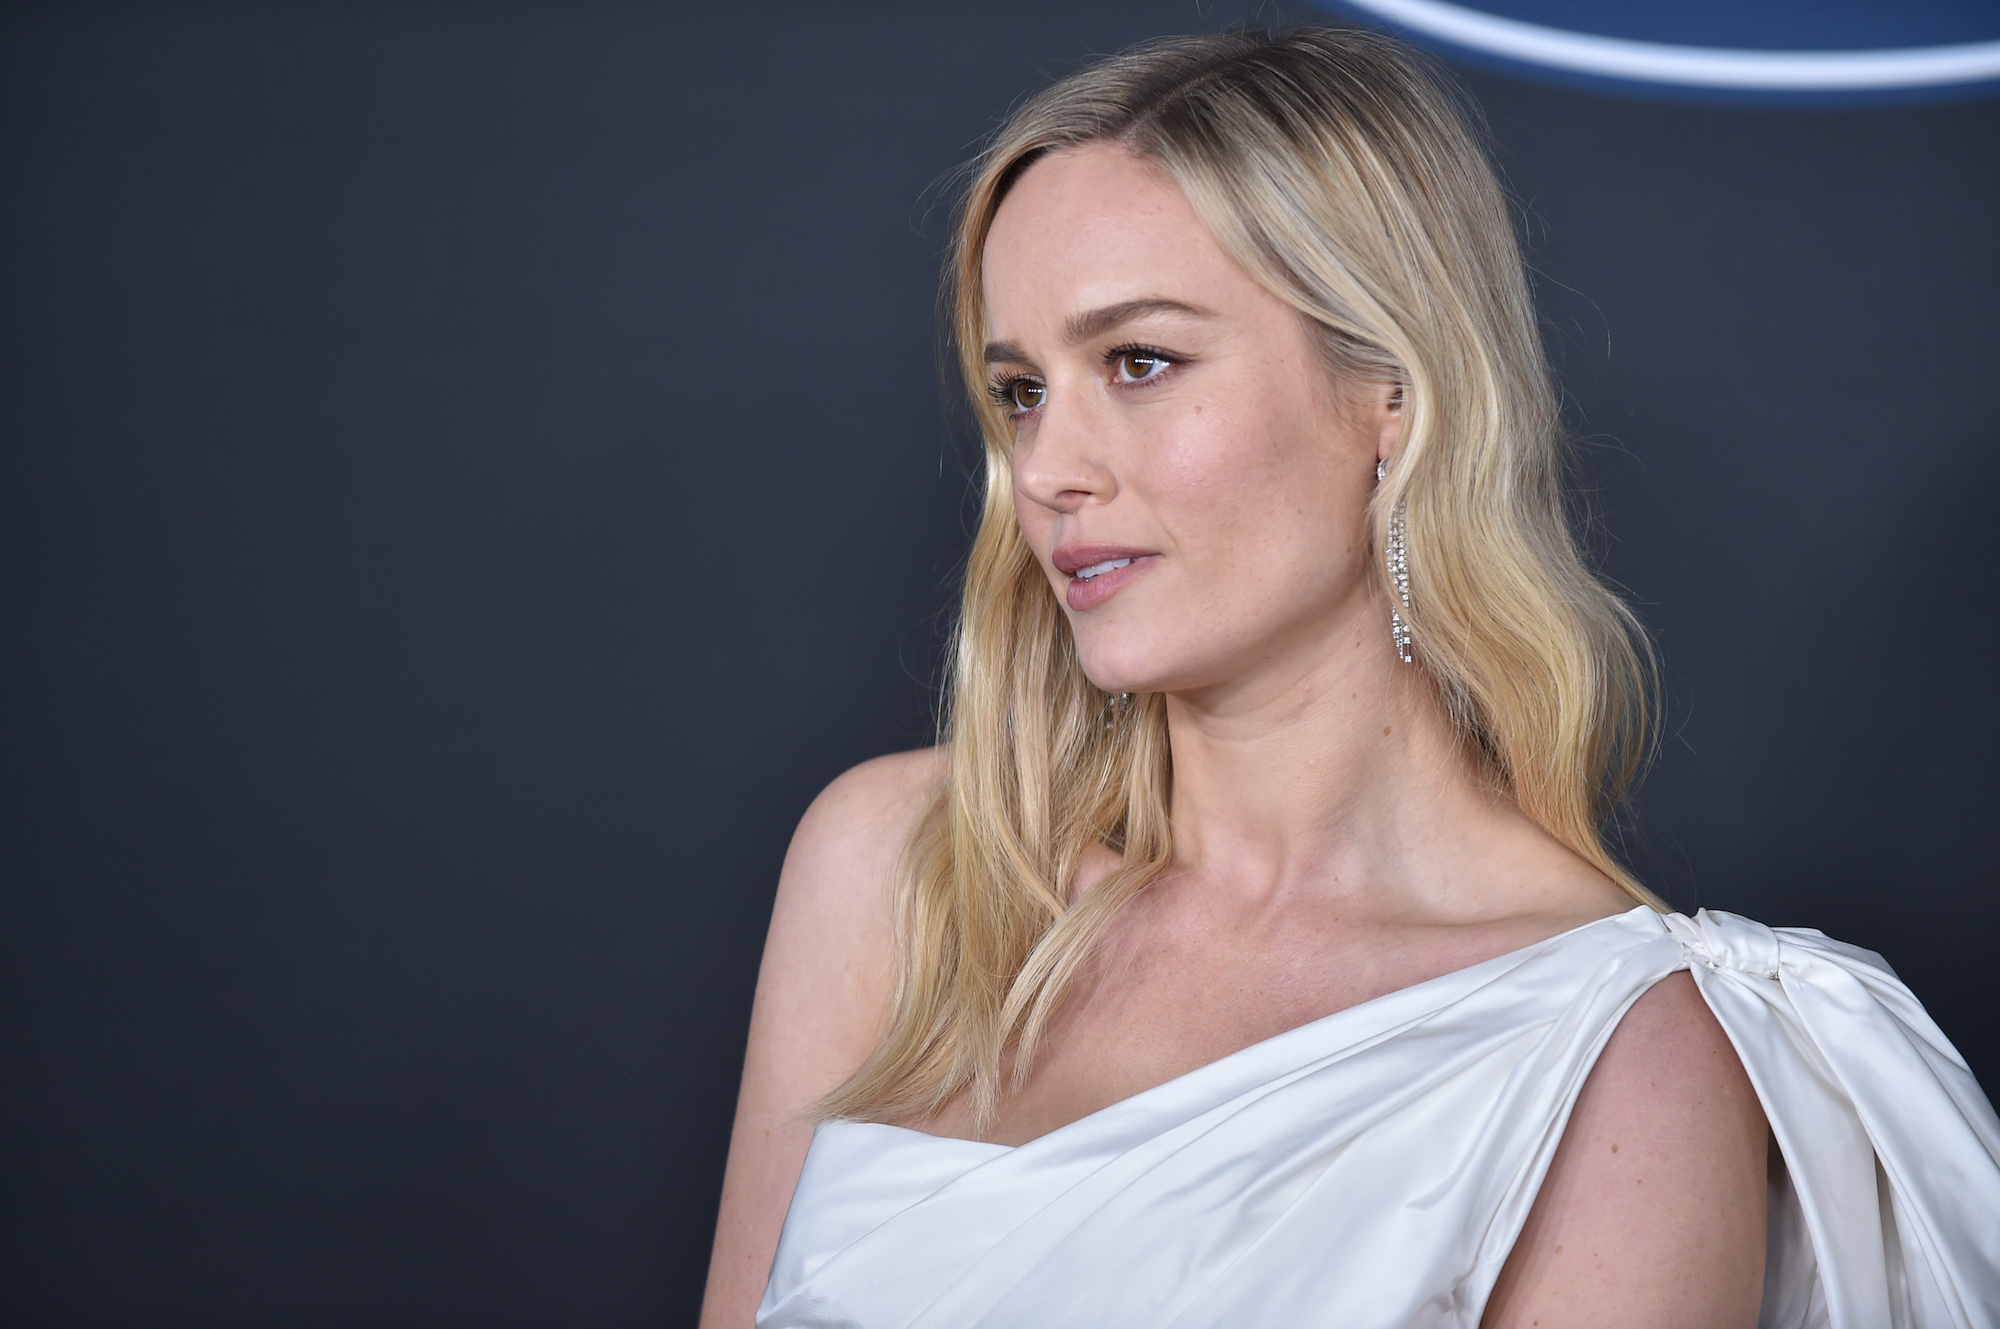 Brie Larson at the 51st NAACP Image Awards on Feb. 22, 2020.